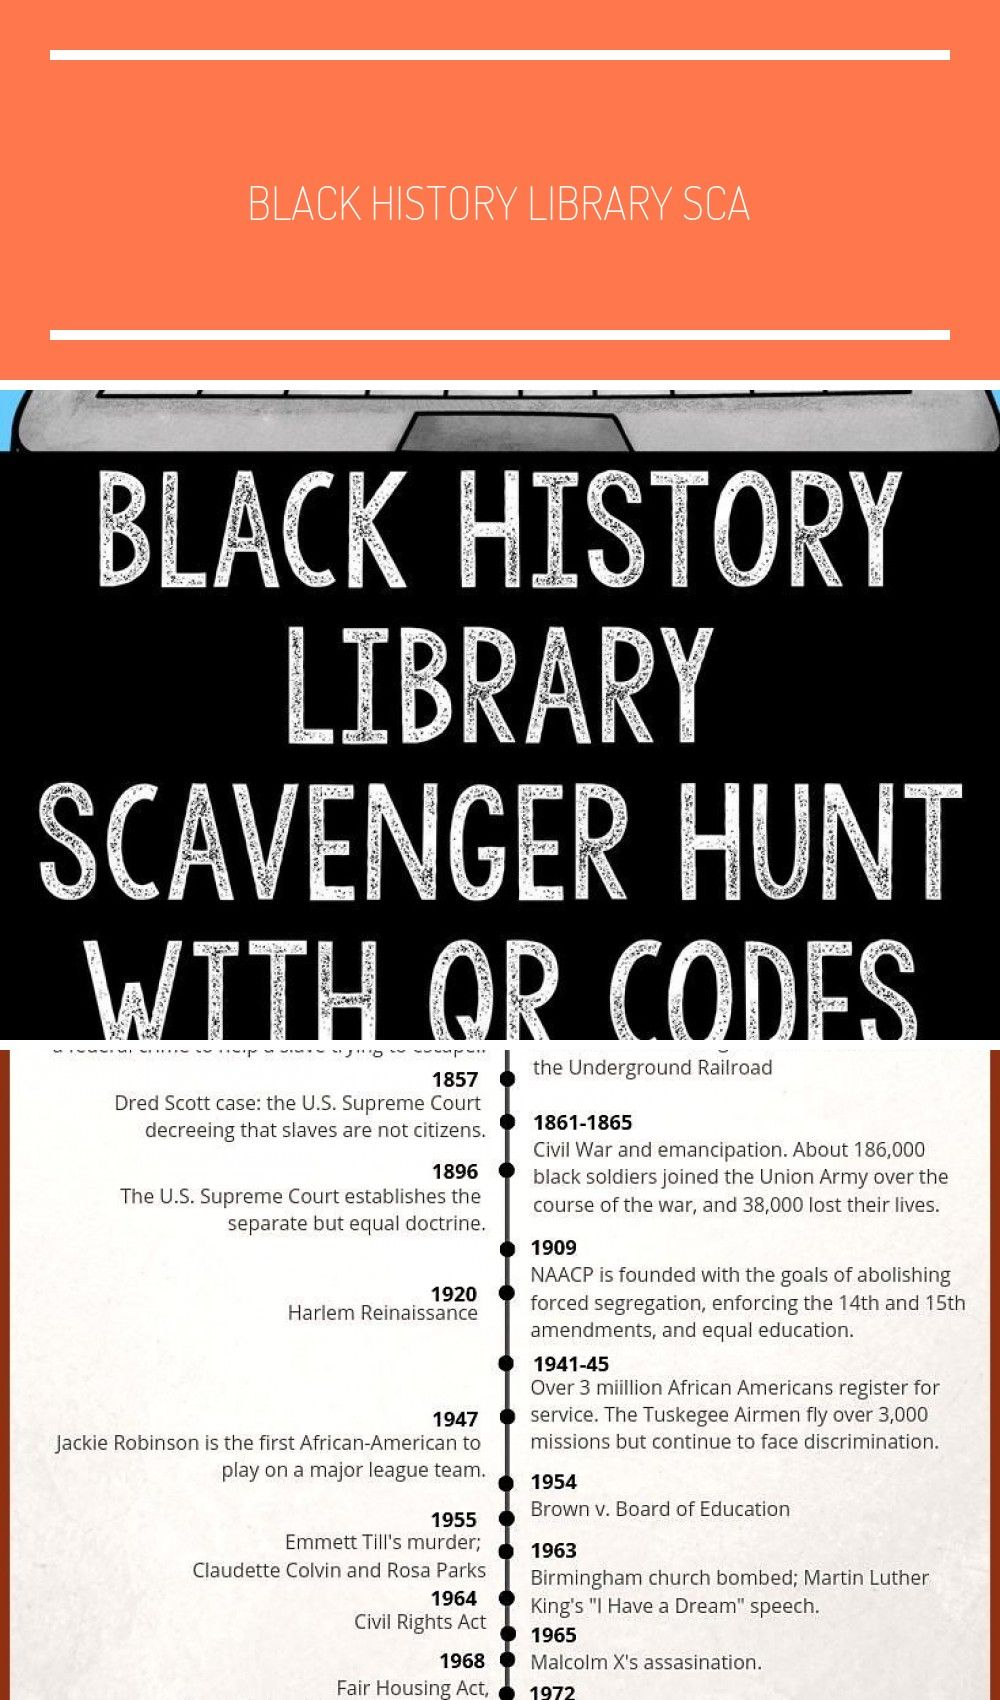 Black History Library Scavenger Hunt with QR Codes black history facts for kids Black History Library Scavenger Hunt with QR Codes